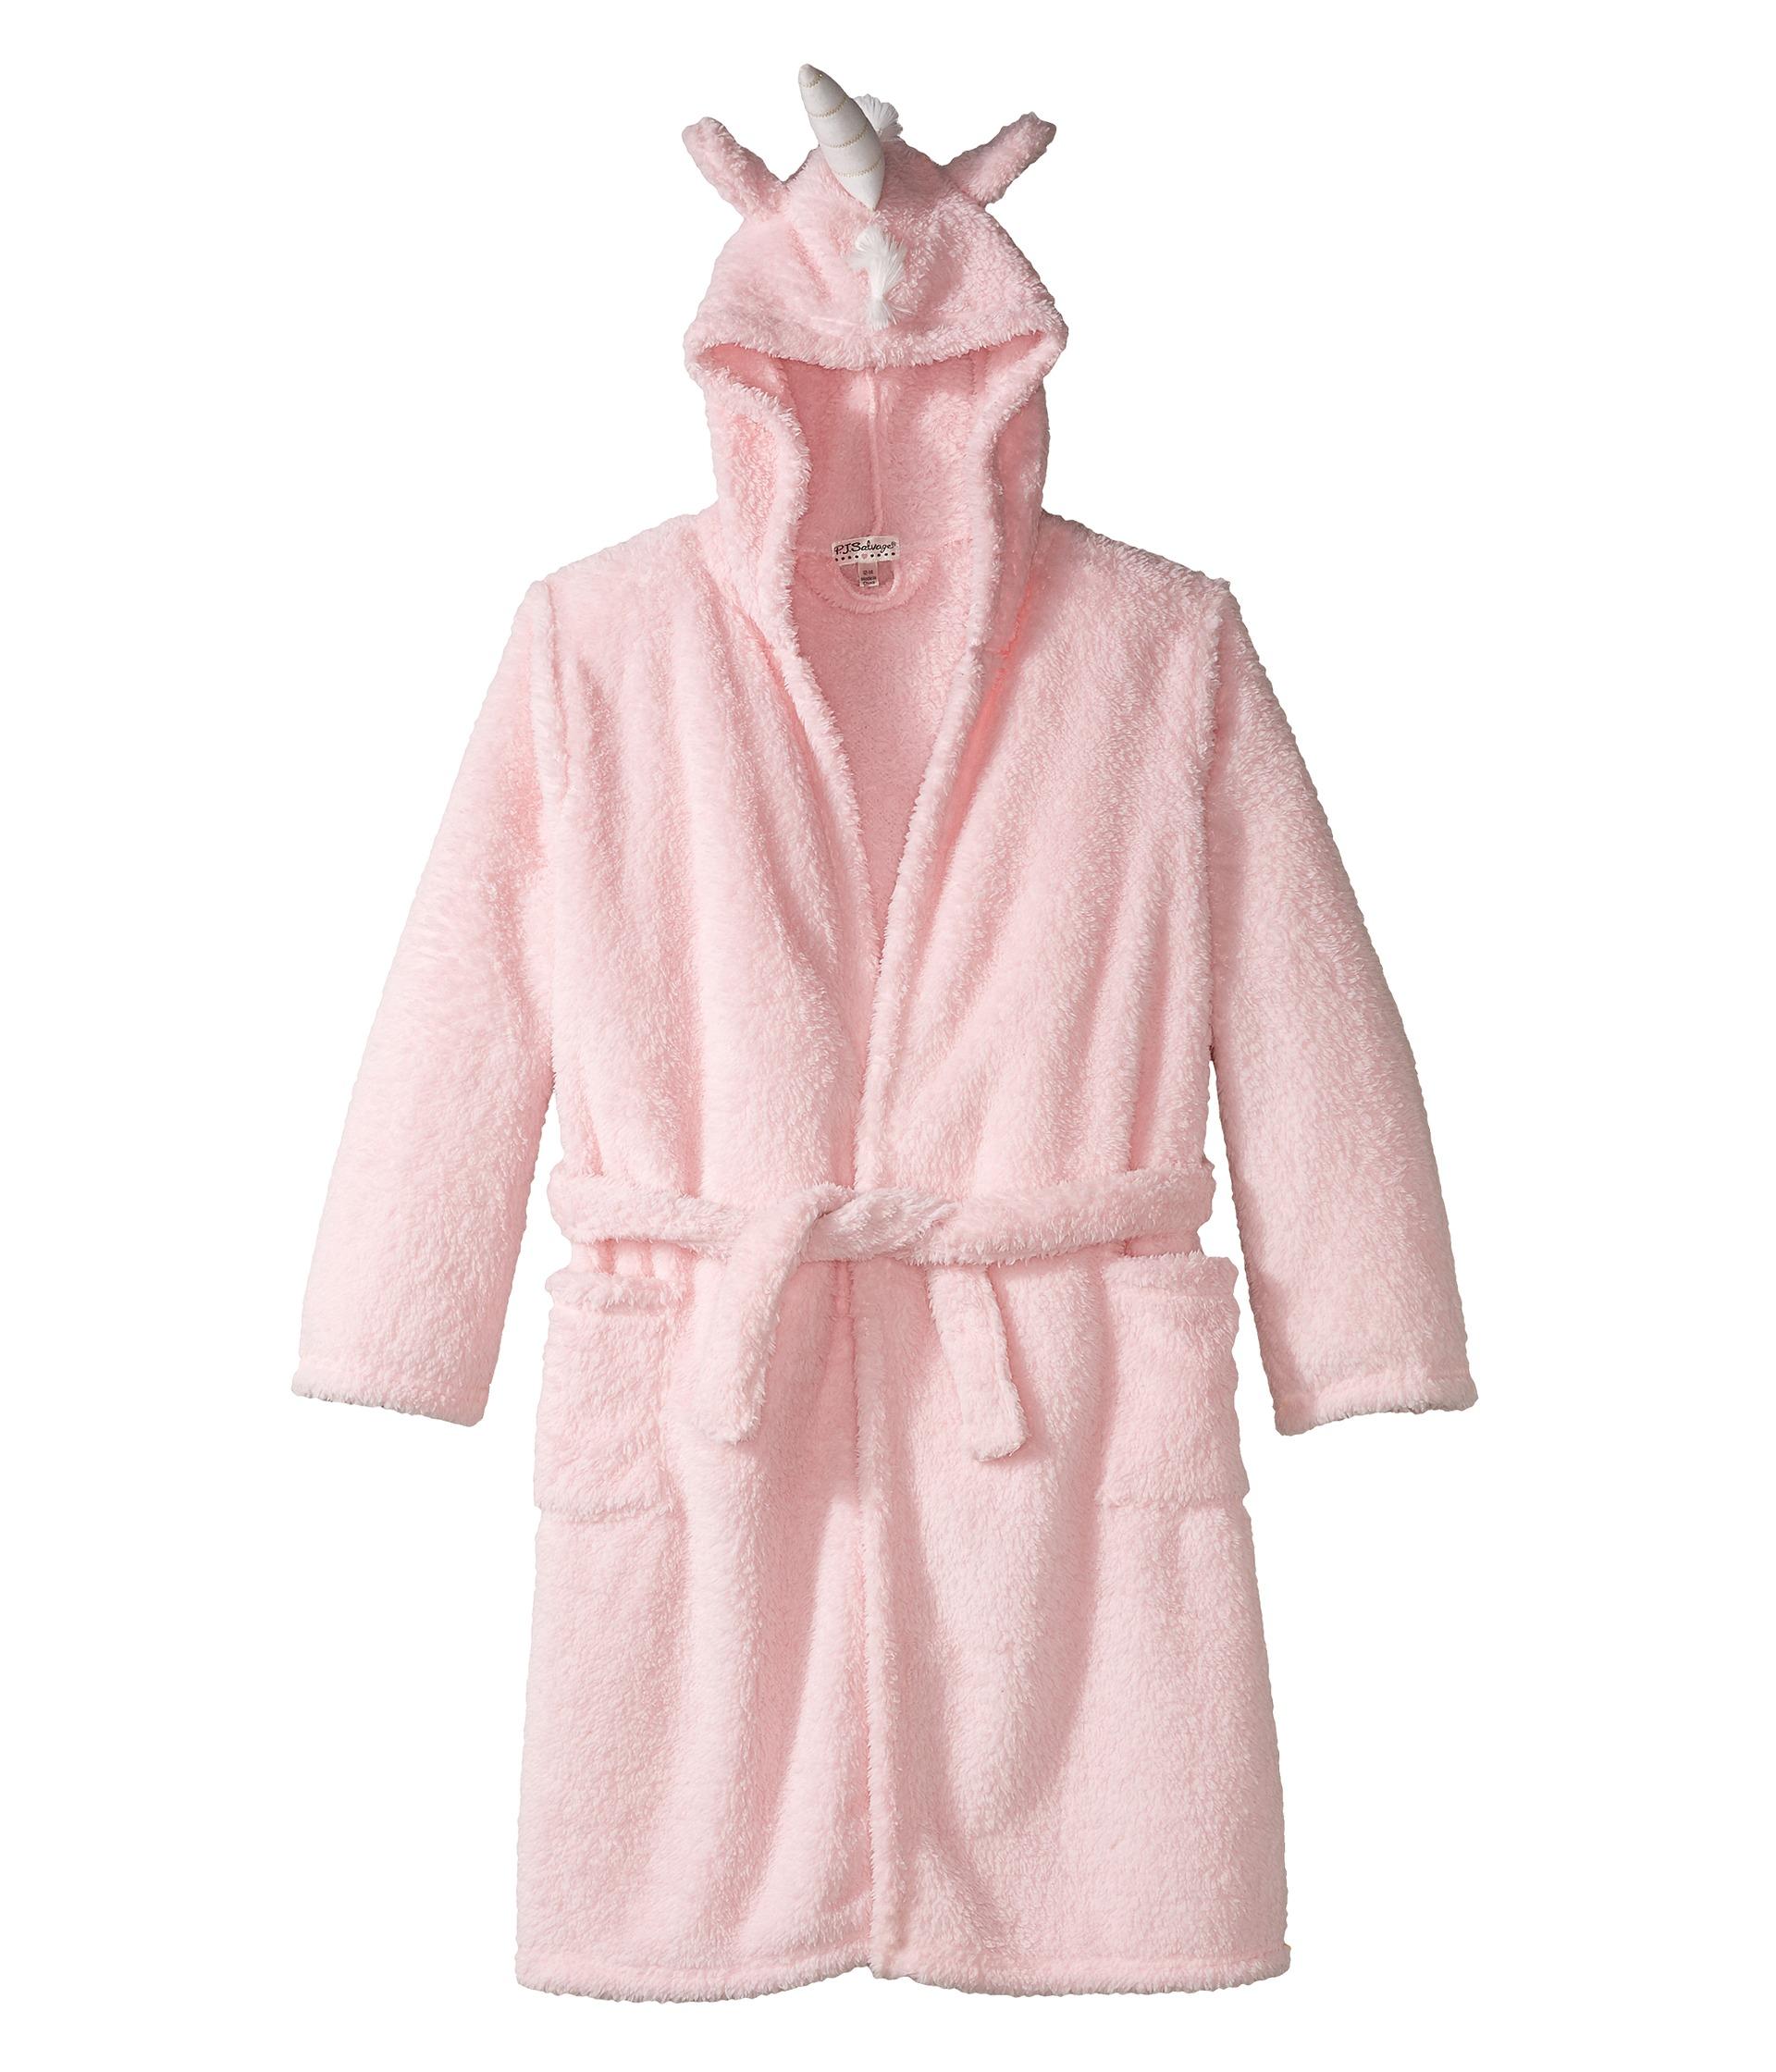 Bath Robes. Bath time is a big part of spending quality time with your little one; keep your child cozy and dry with absorbent kids bathrobes designed for infants, toddlers and children.